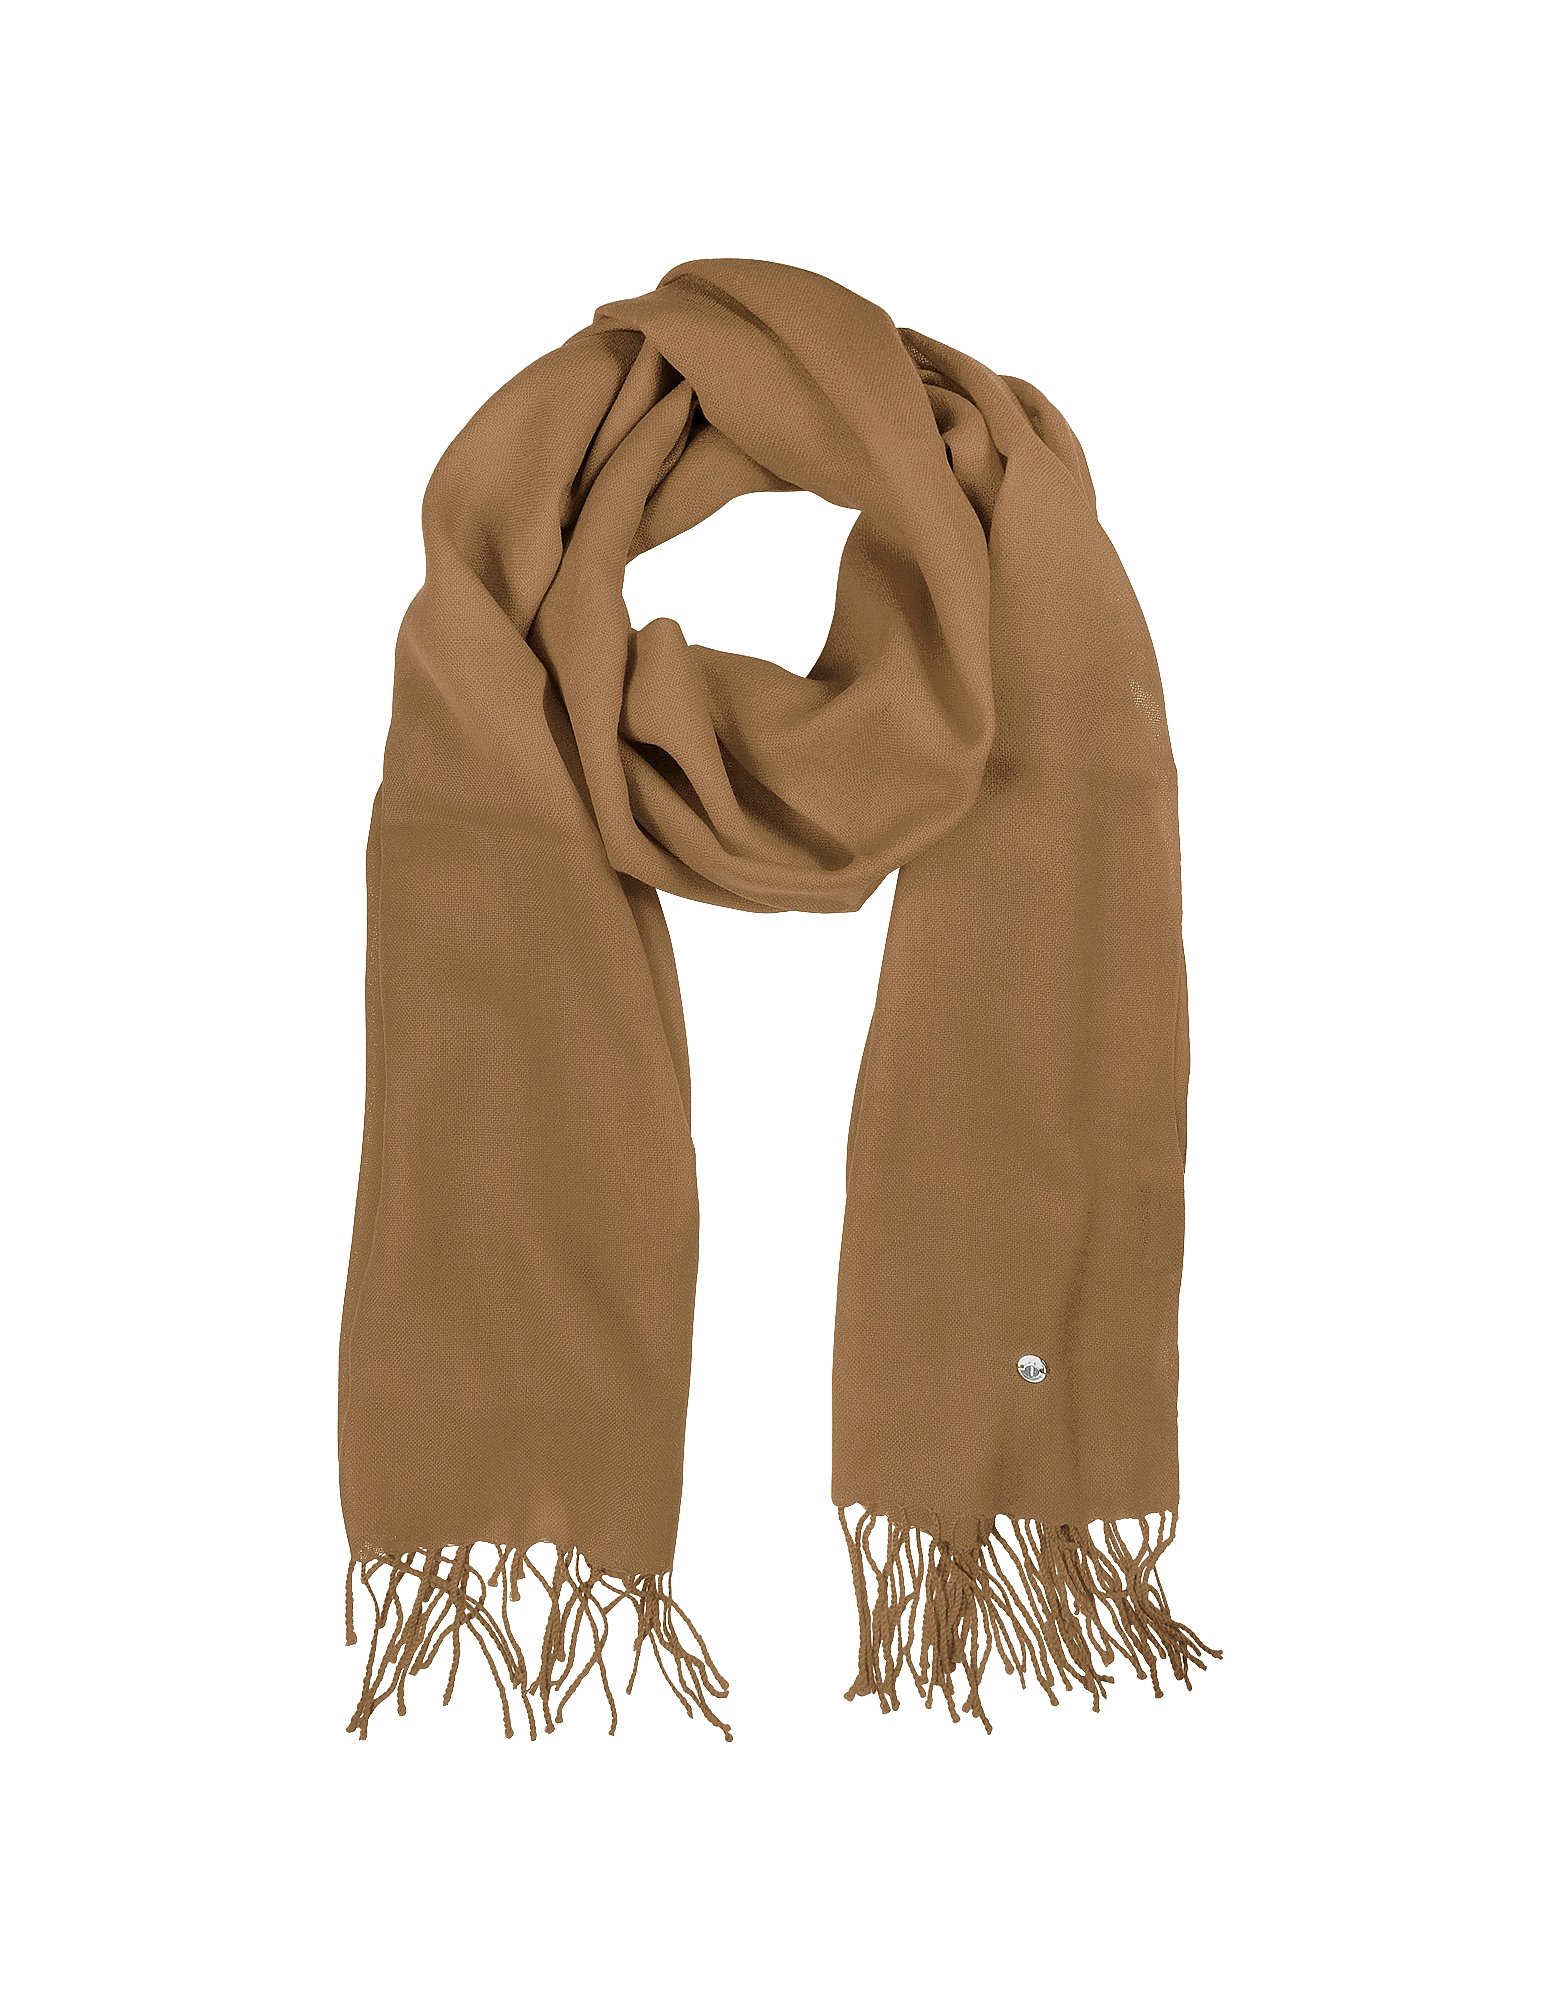 Mila Schon Long Scarves, Camel Wool and Cashmere Stole